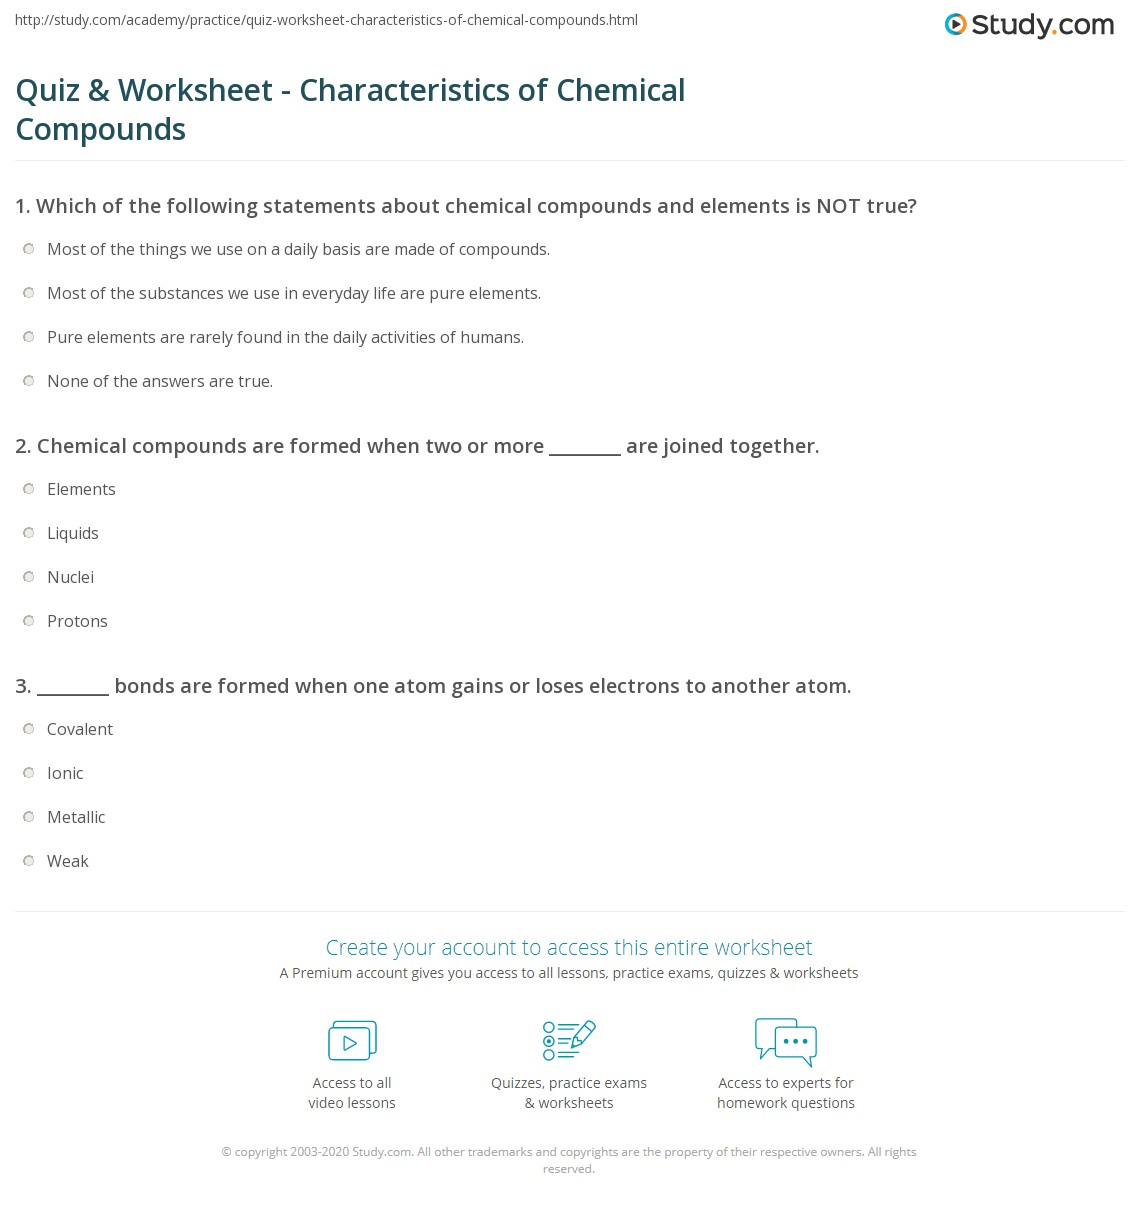 Quiz Worksheet Characteristics Of Chemical Compounds Study Com